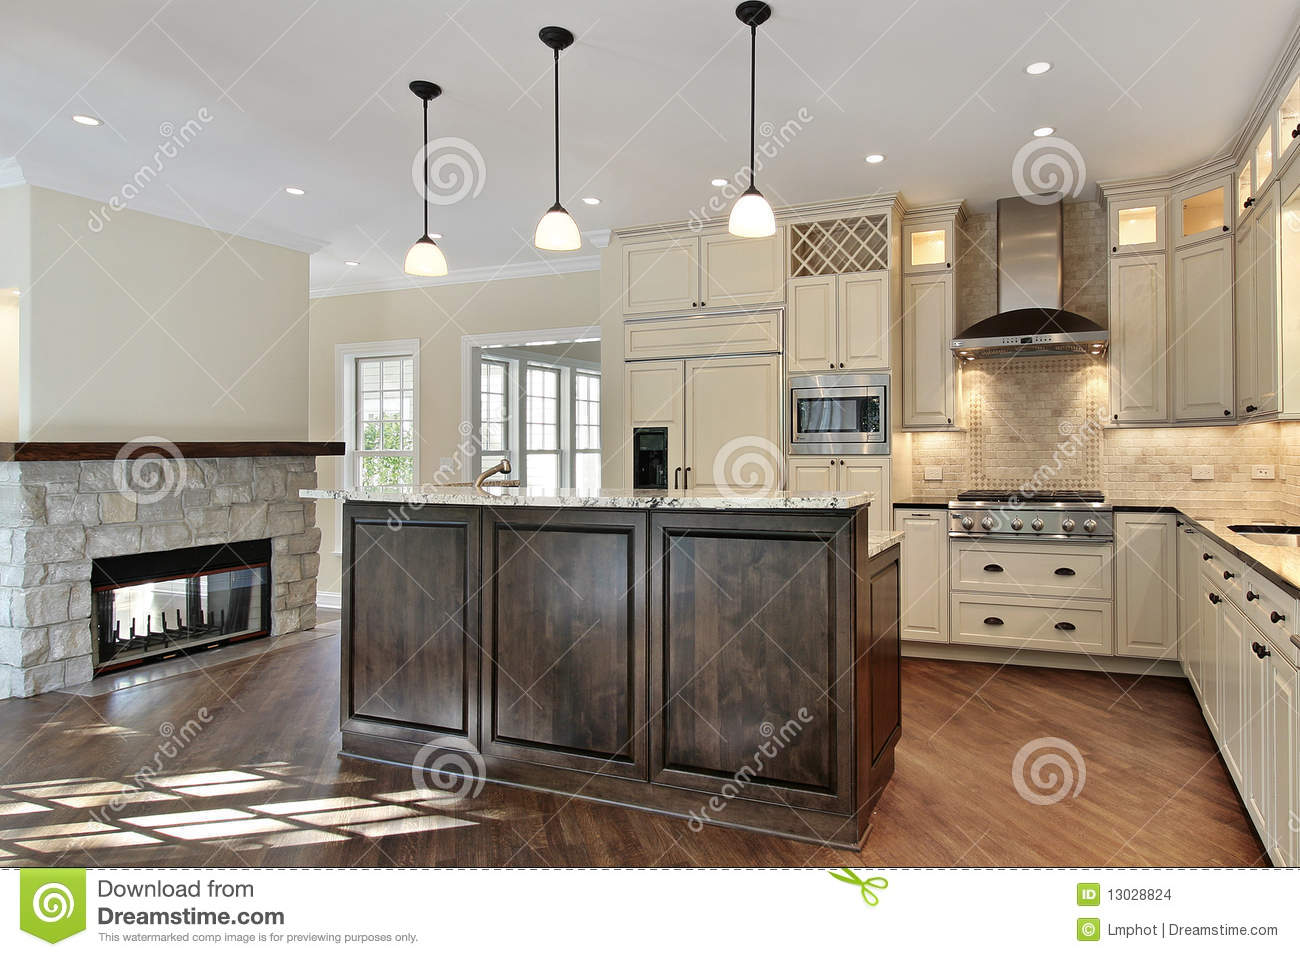 Kitchen With Fireplace Kitchen Grill Oven Kitchen Fireplace